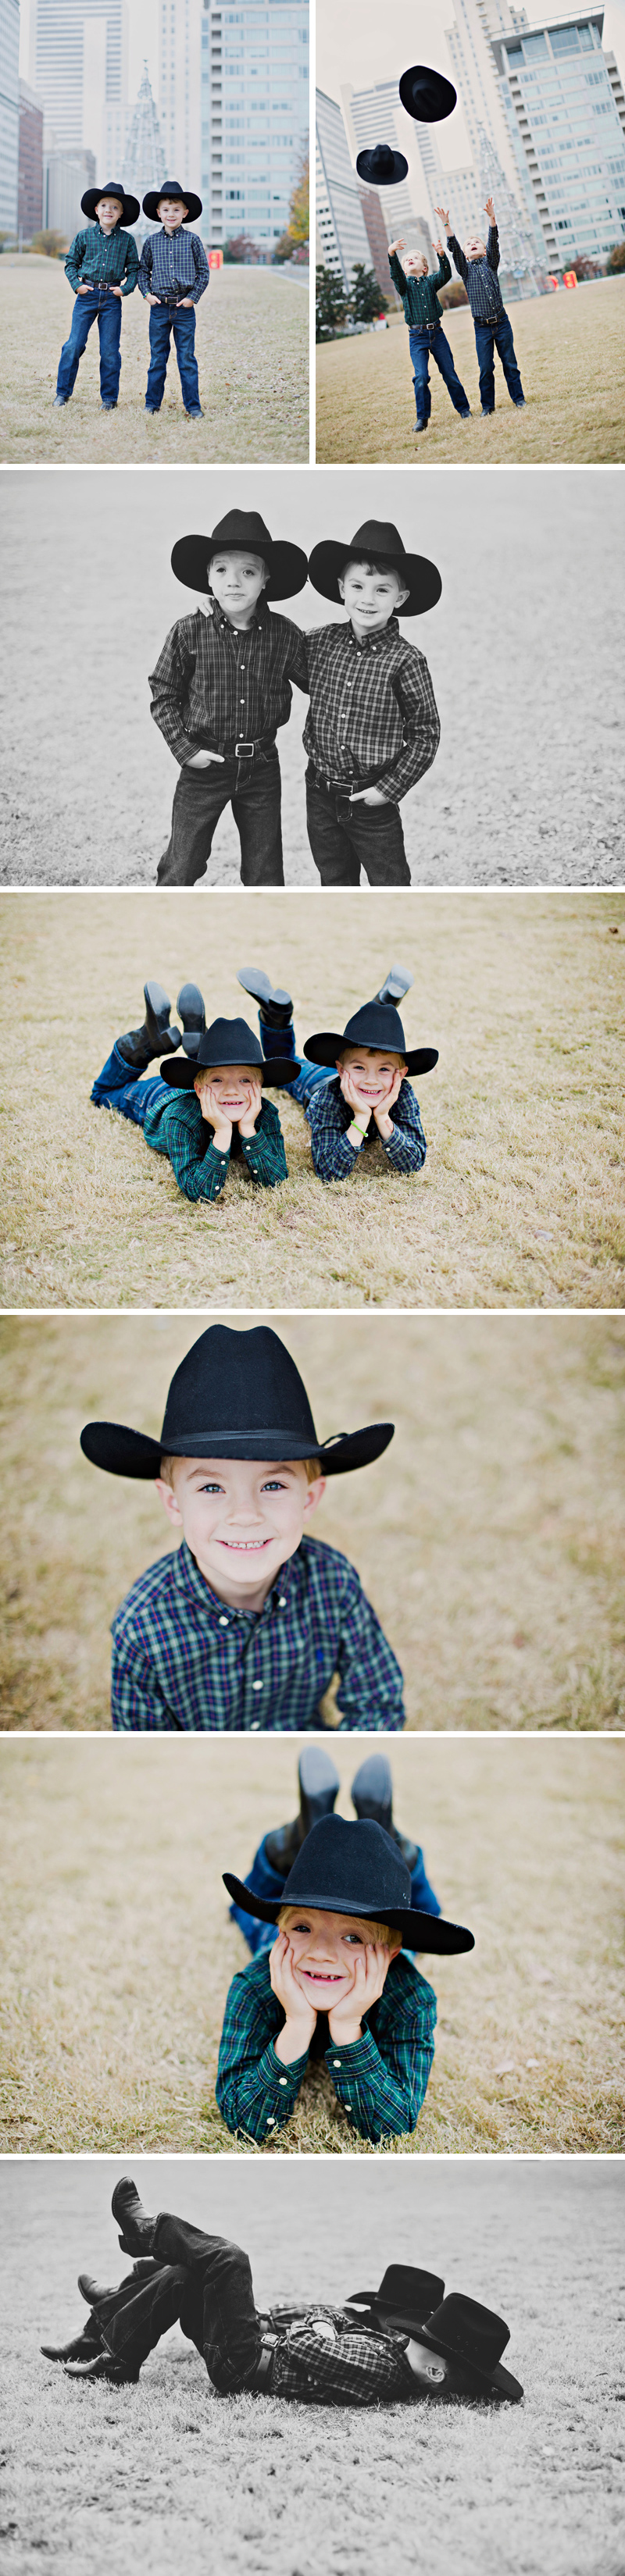 Dallas-Family-Photographerc080